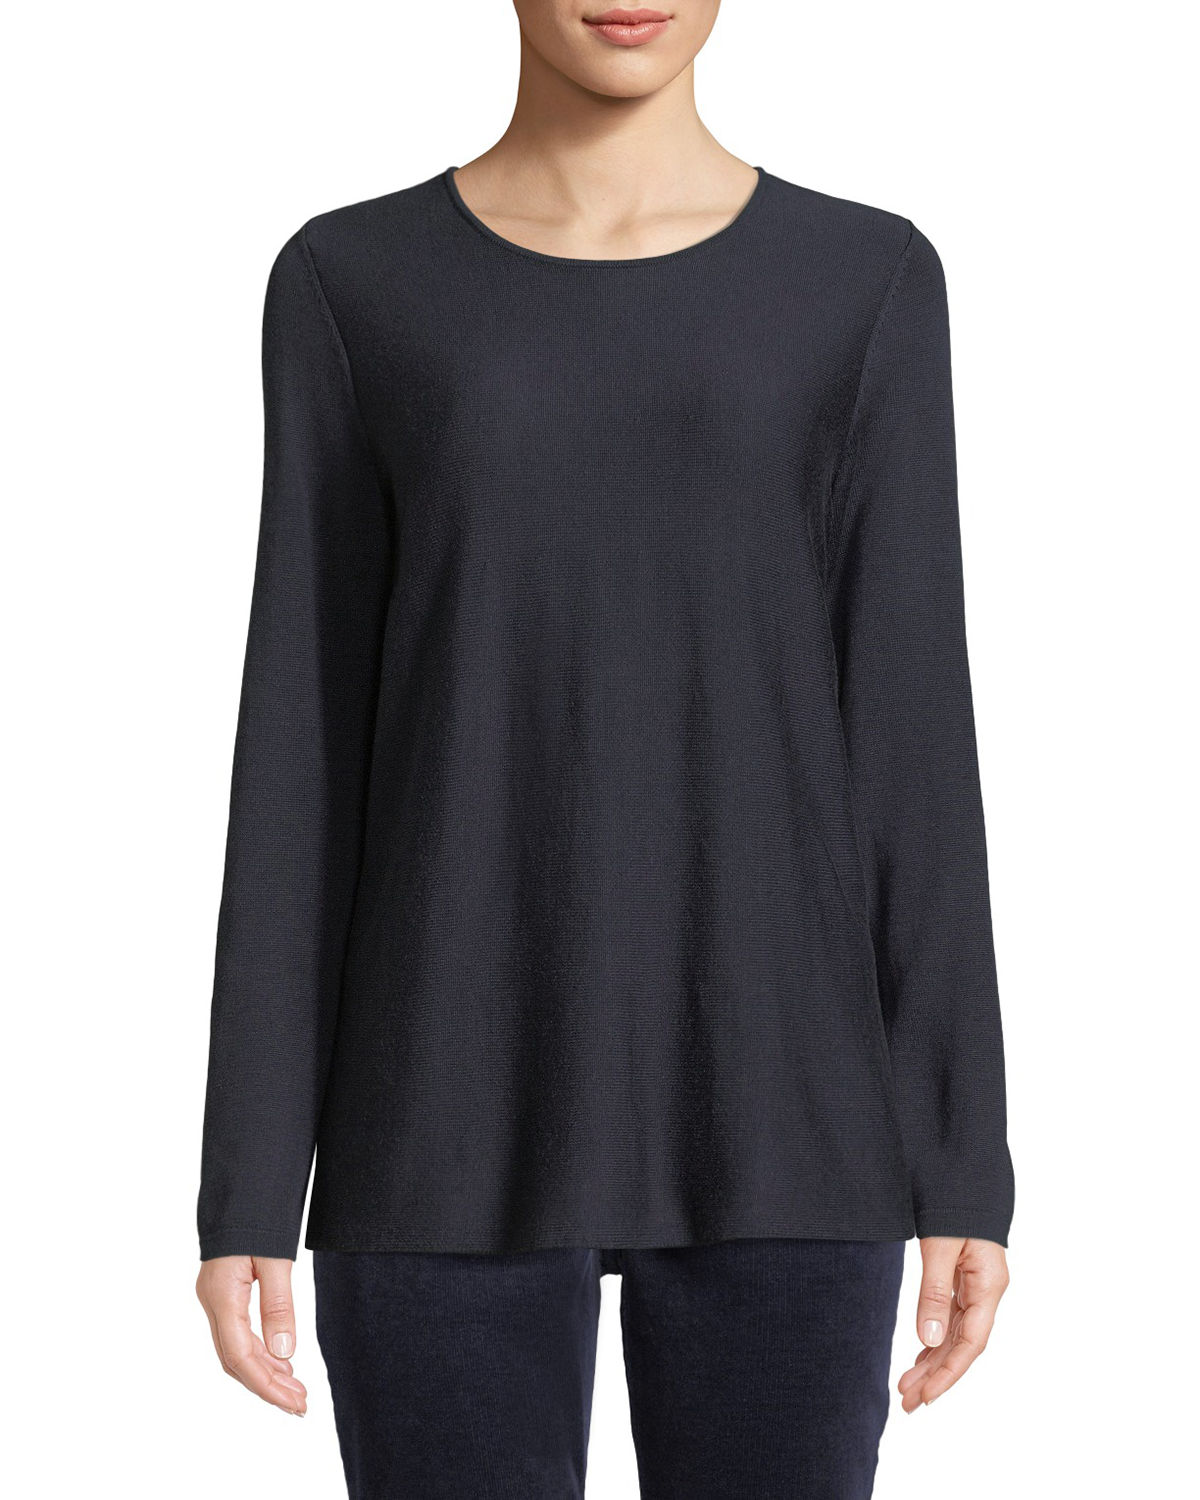 4d2fd76ce13 Clothing. New Arrival. EILEEN FISHER TENCEL REG  SILK ROUND-NECK SWEATER